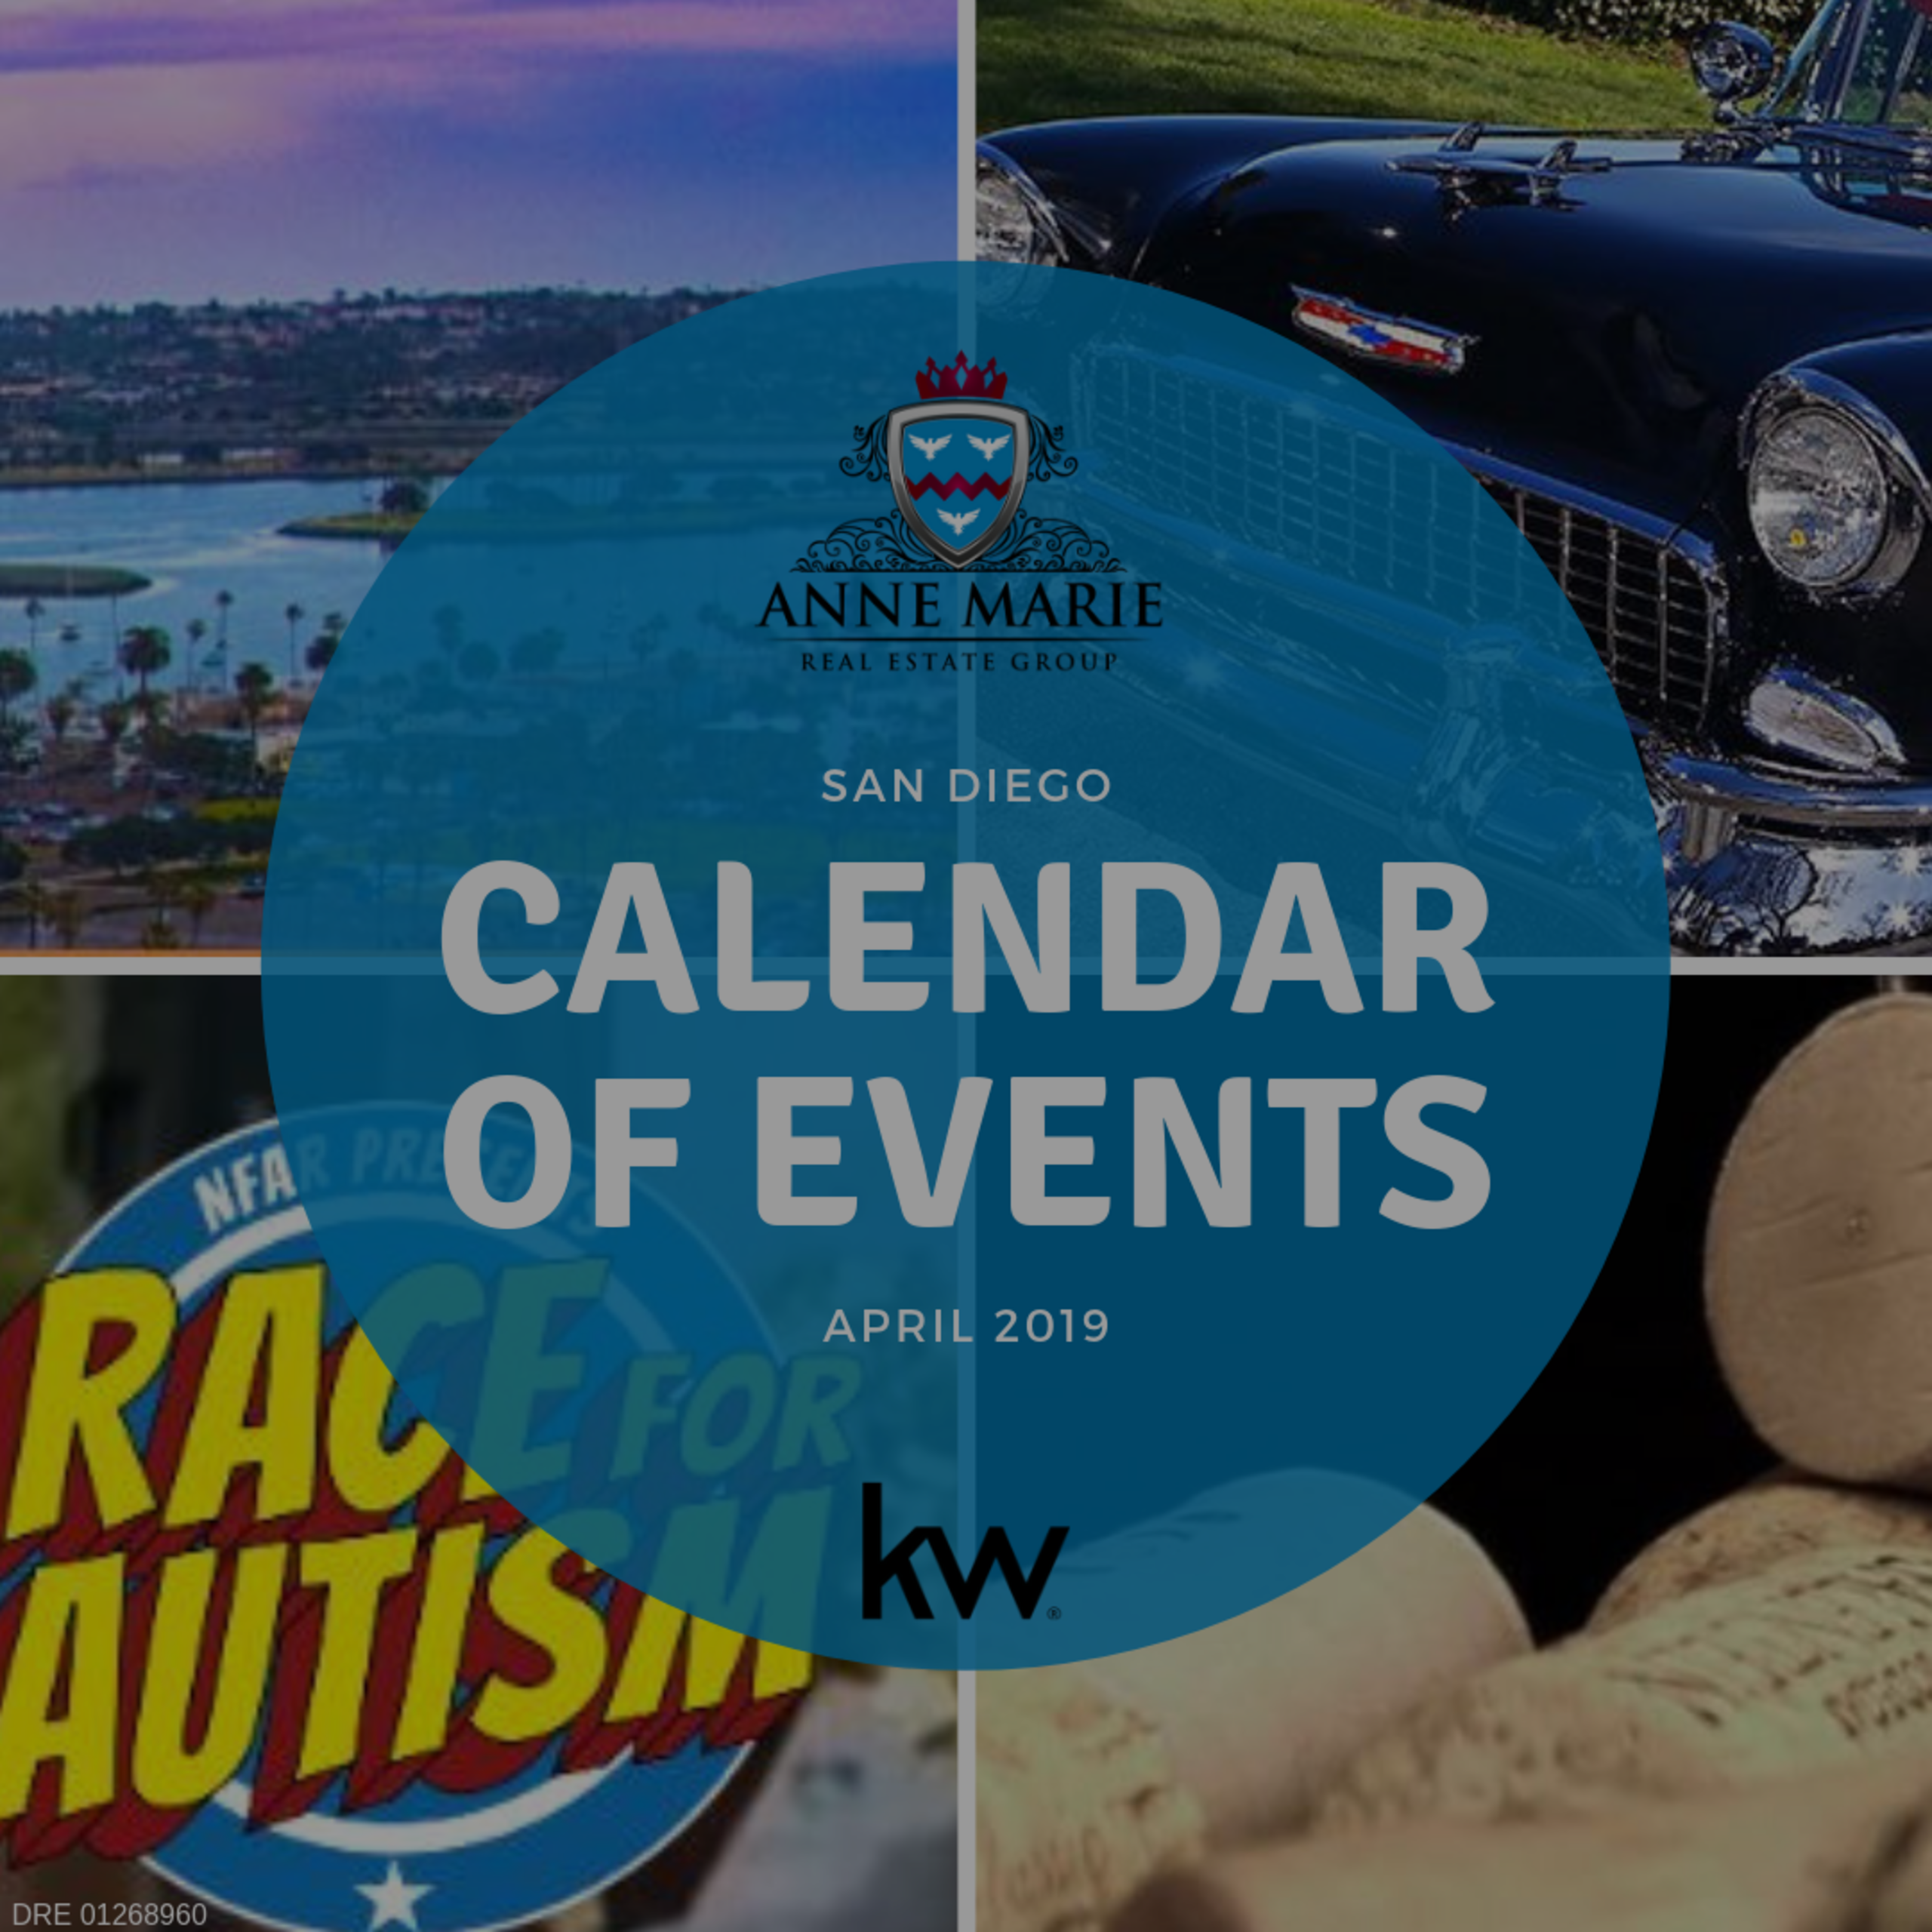 April 2019 Events in San Diego